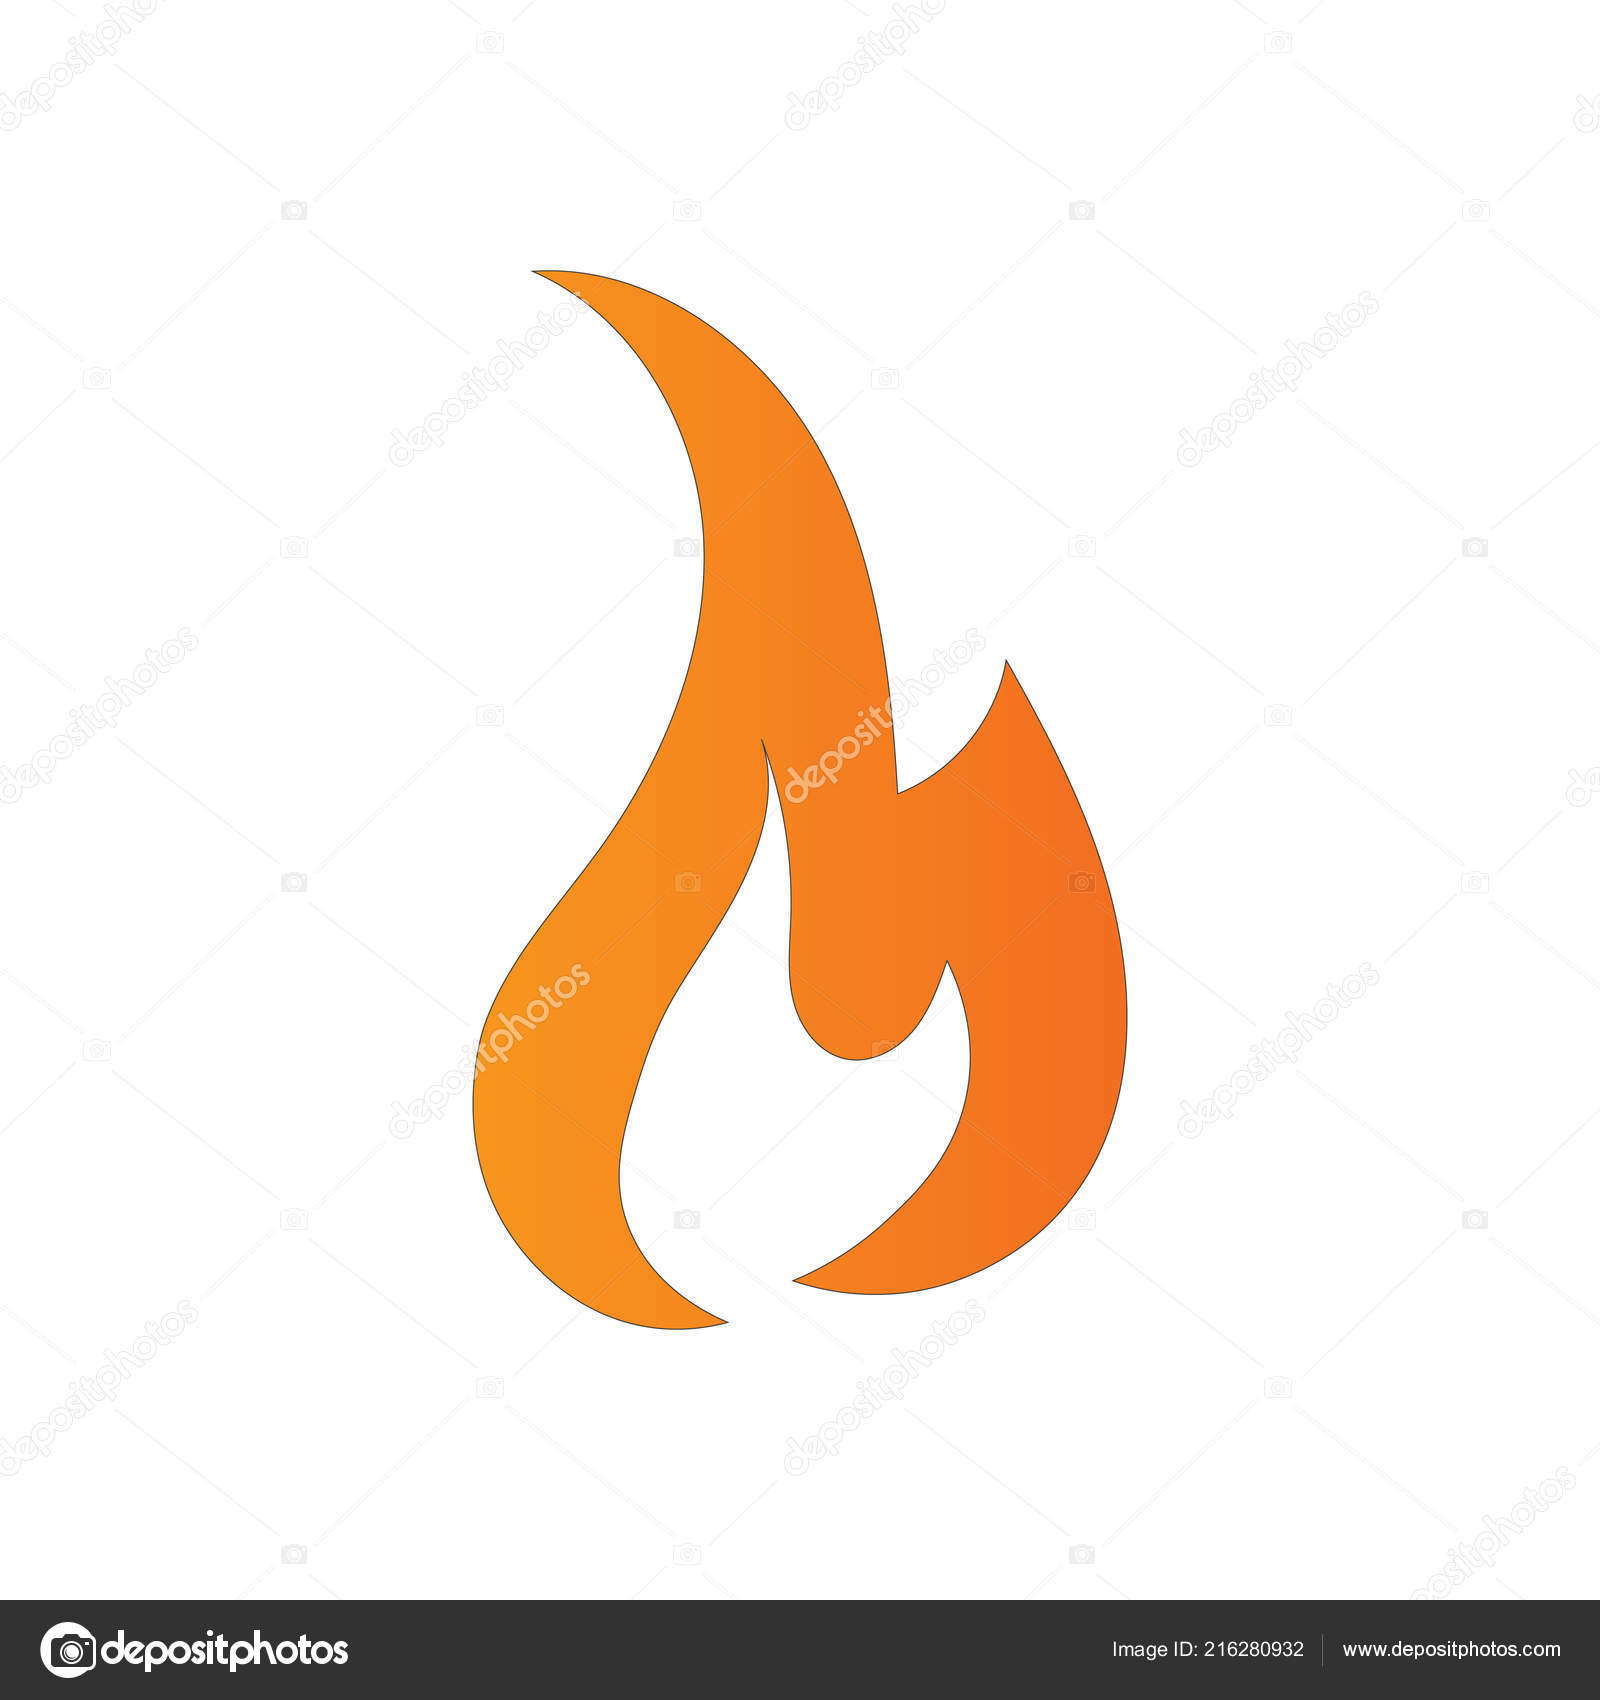 fire flames logo design template icon illustration gray background